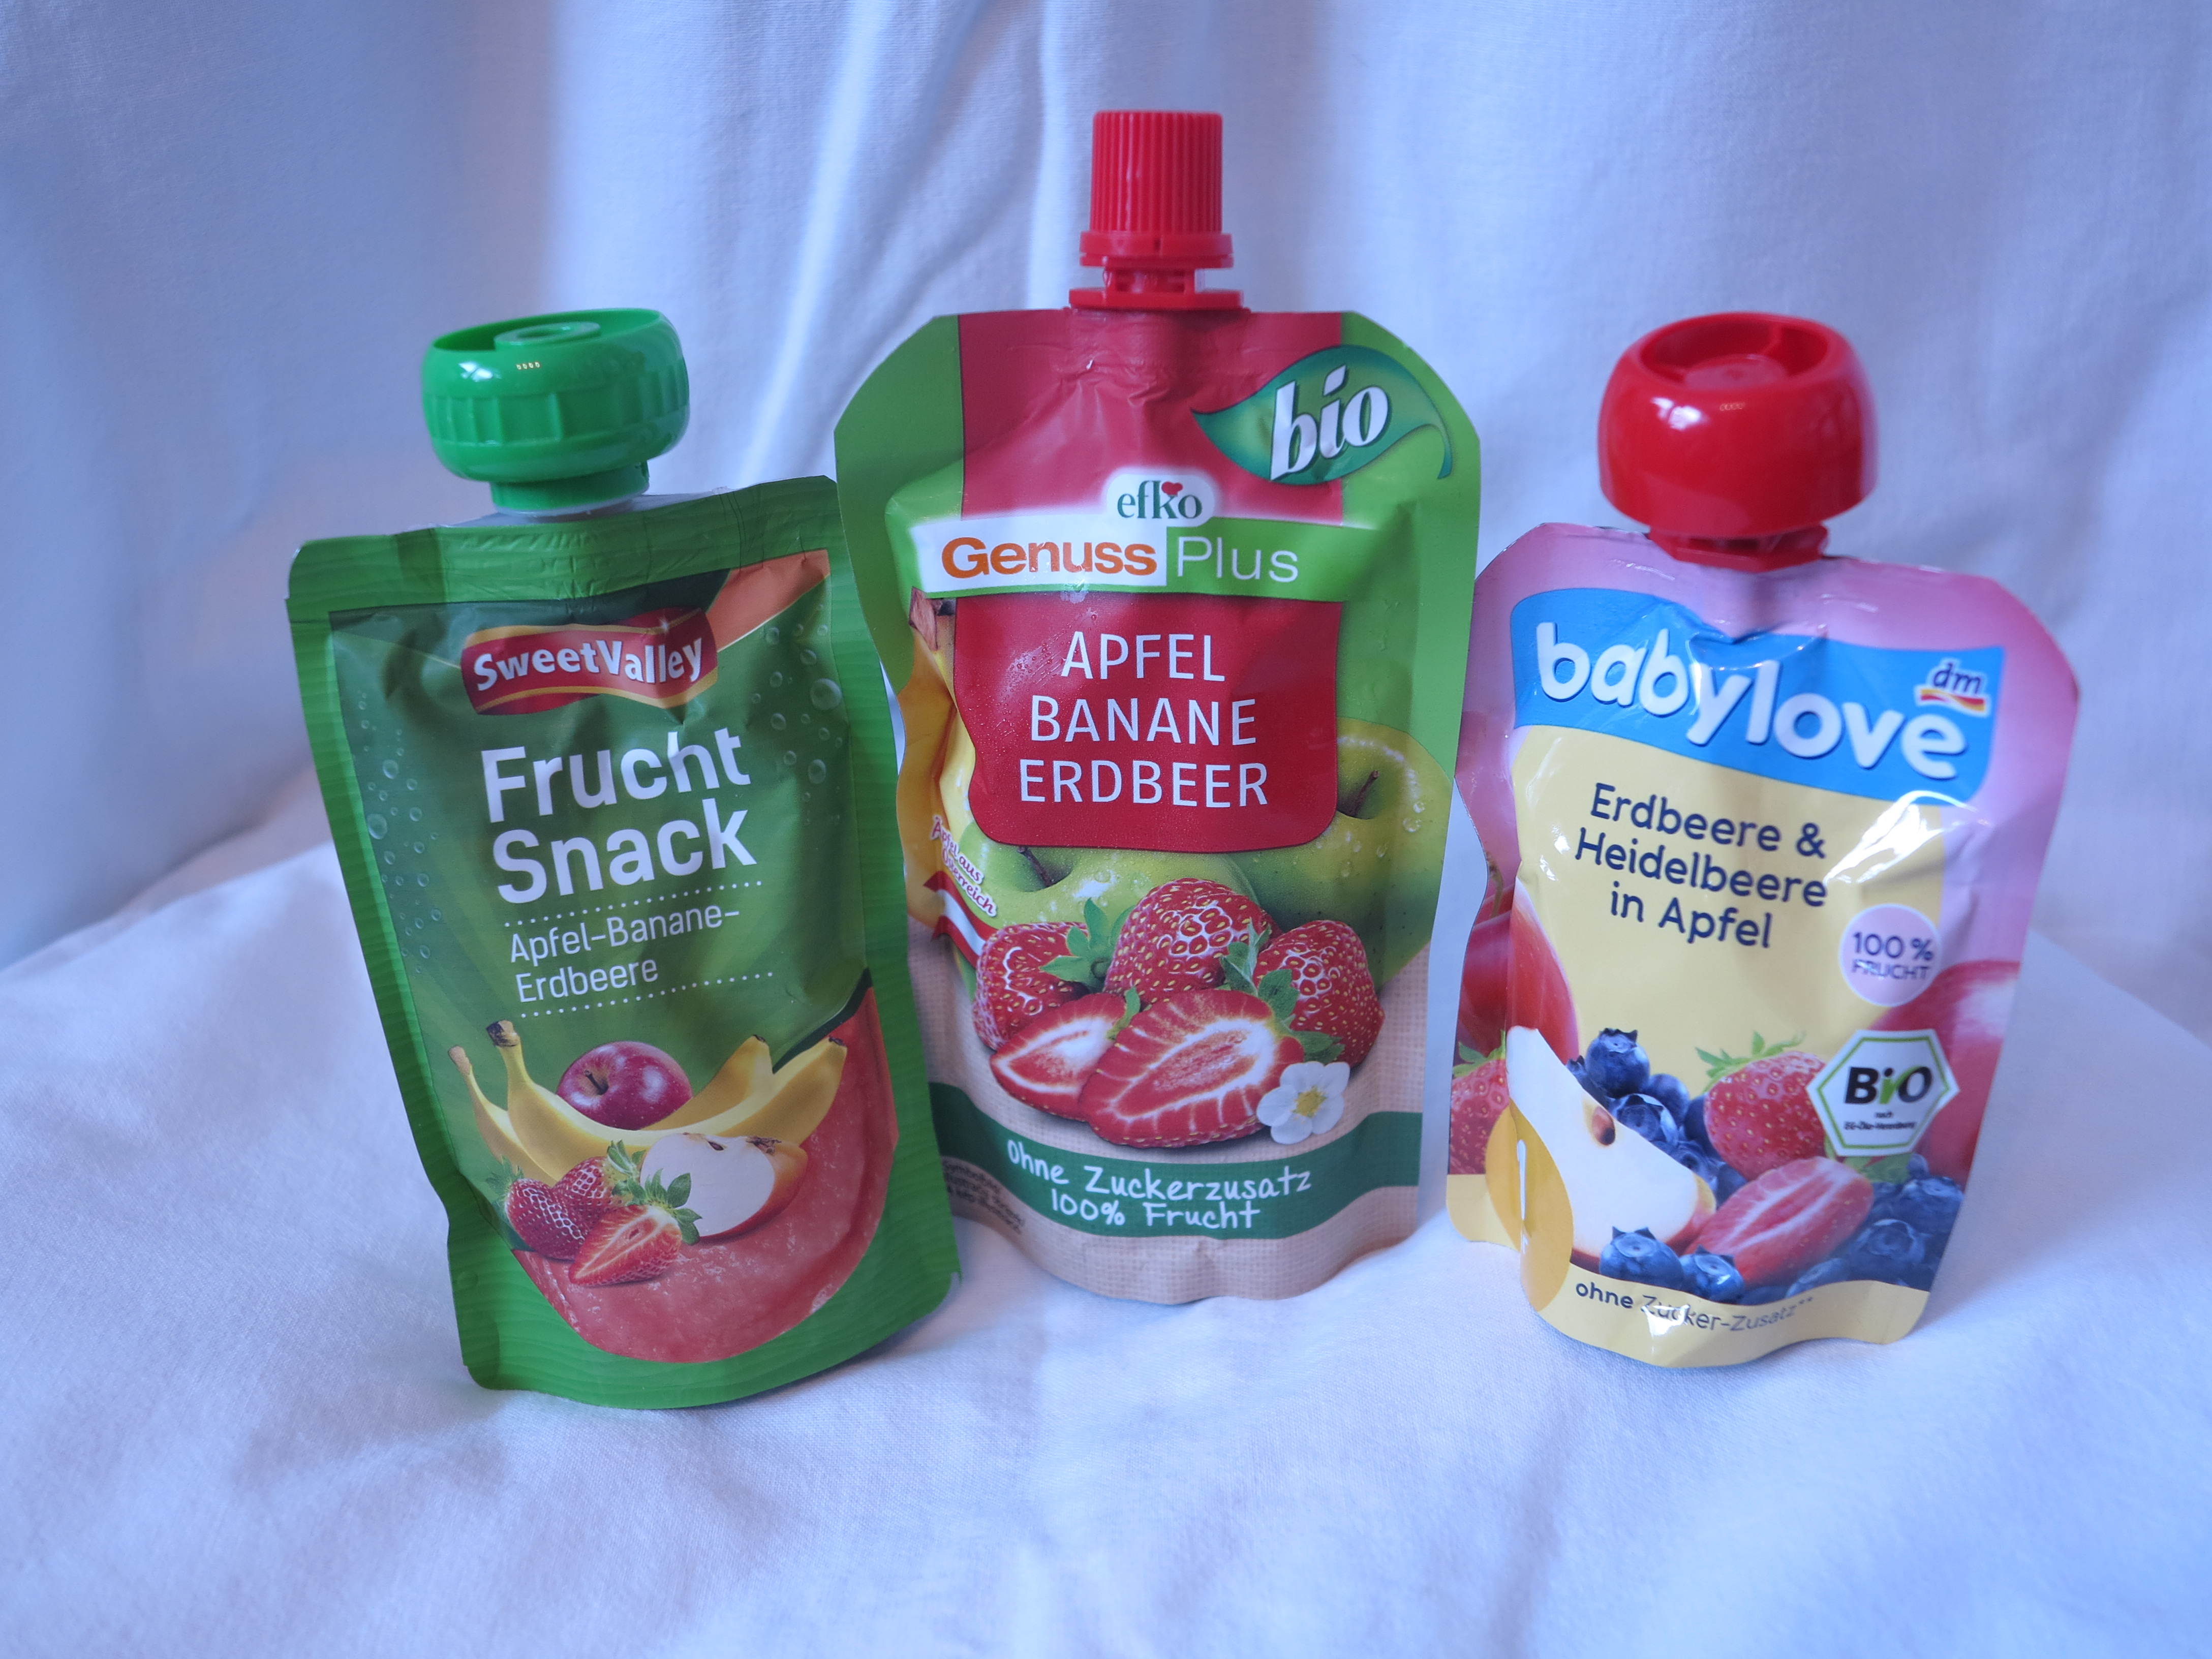 Quetschies Obstmus Efko Babylove SweetValley